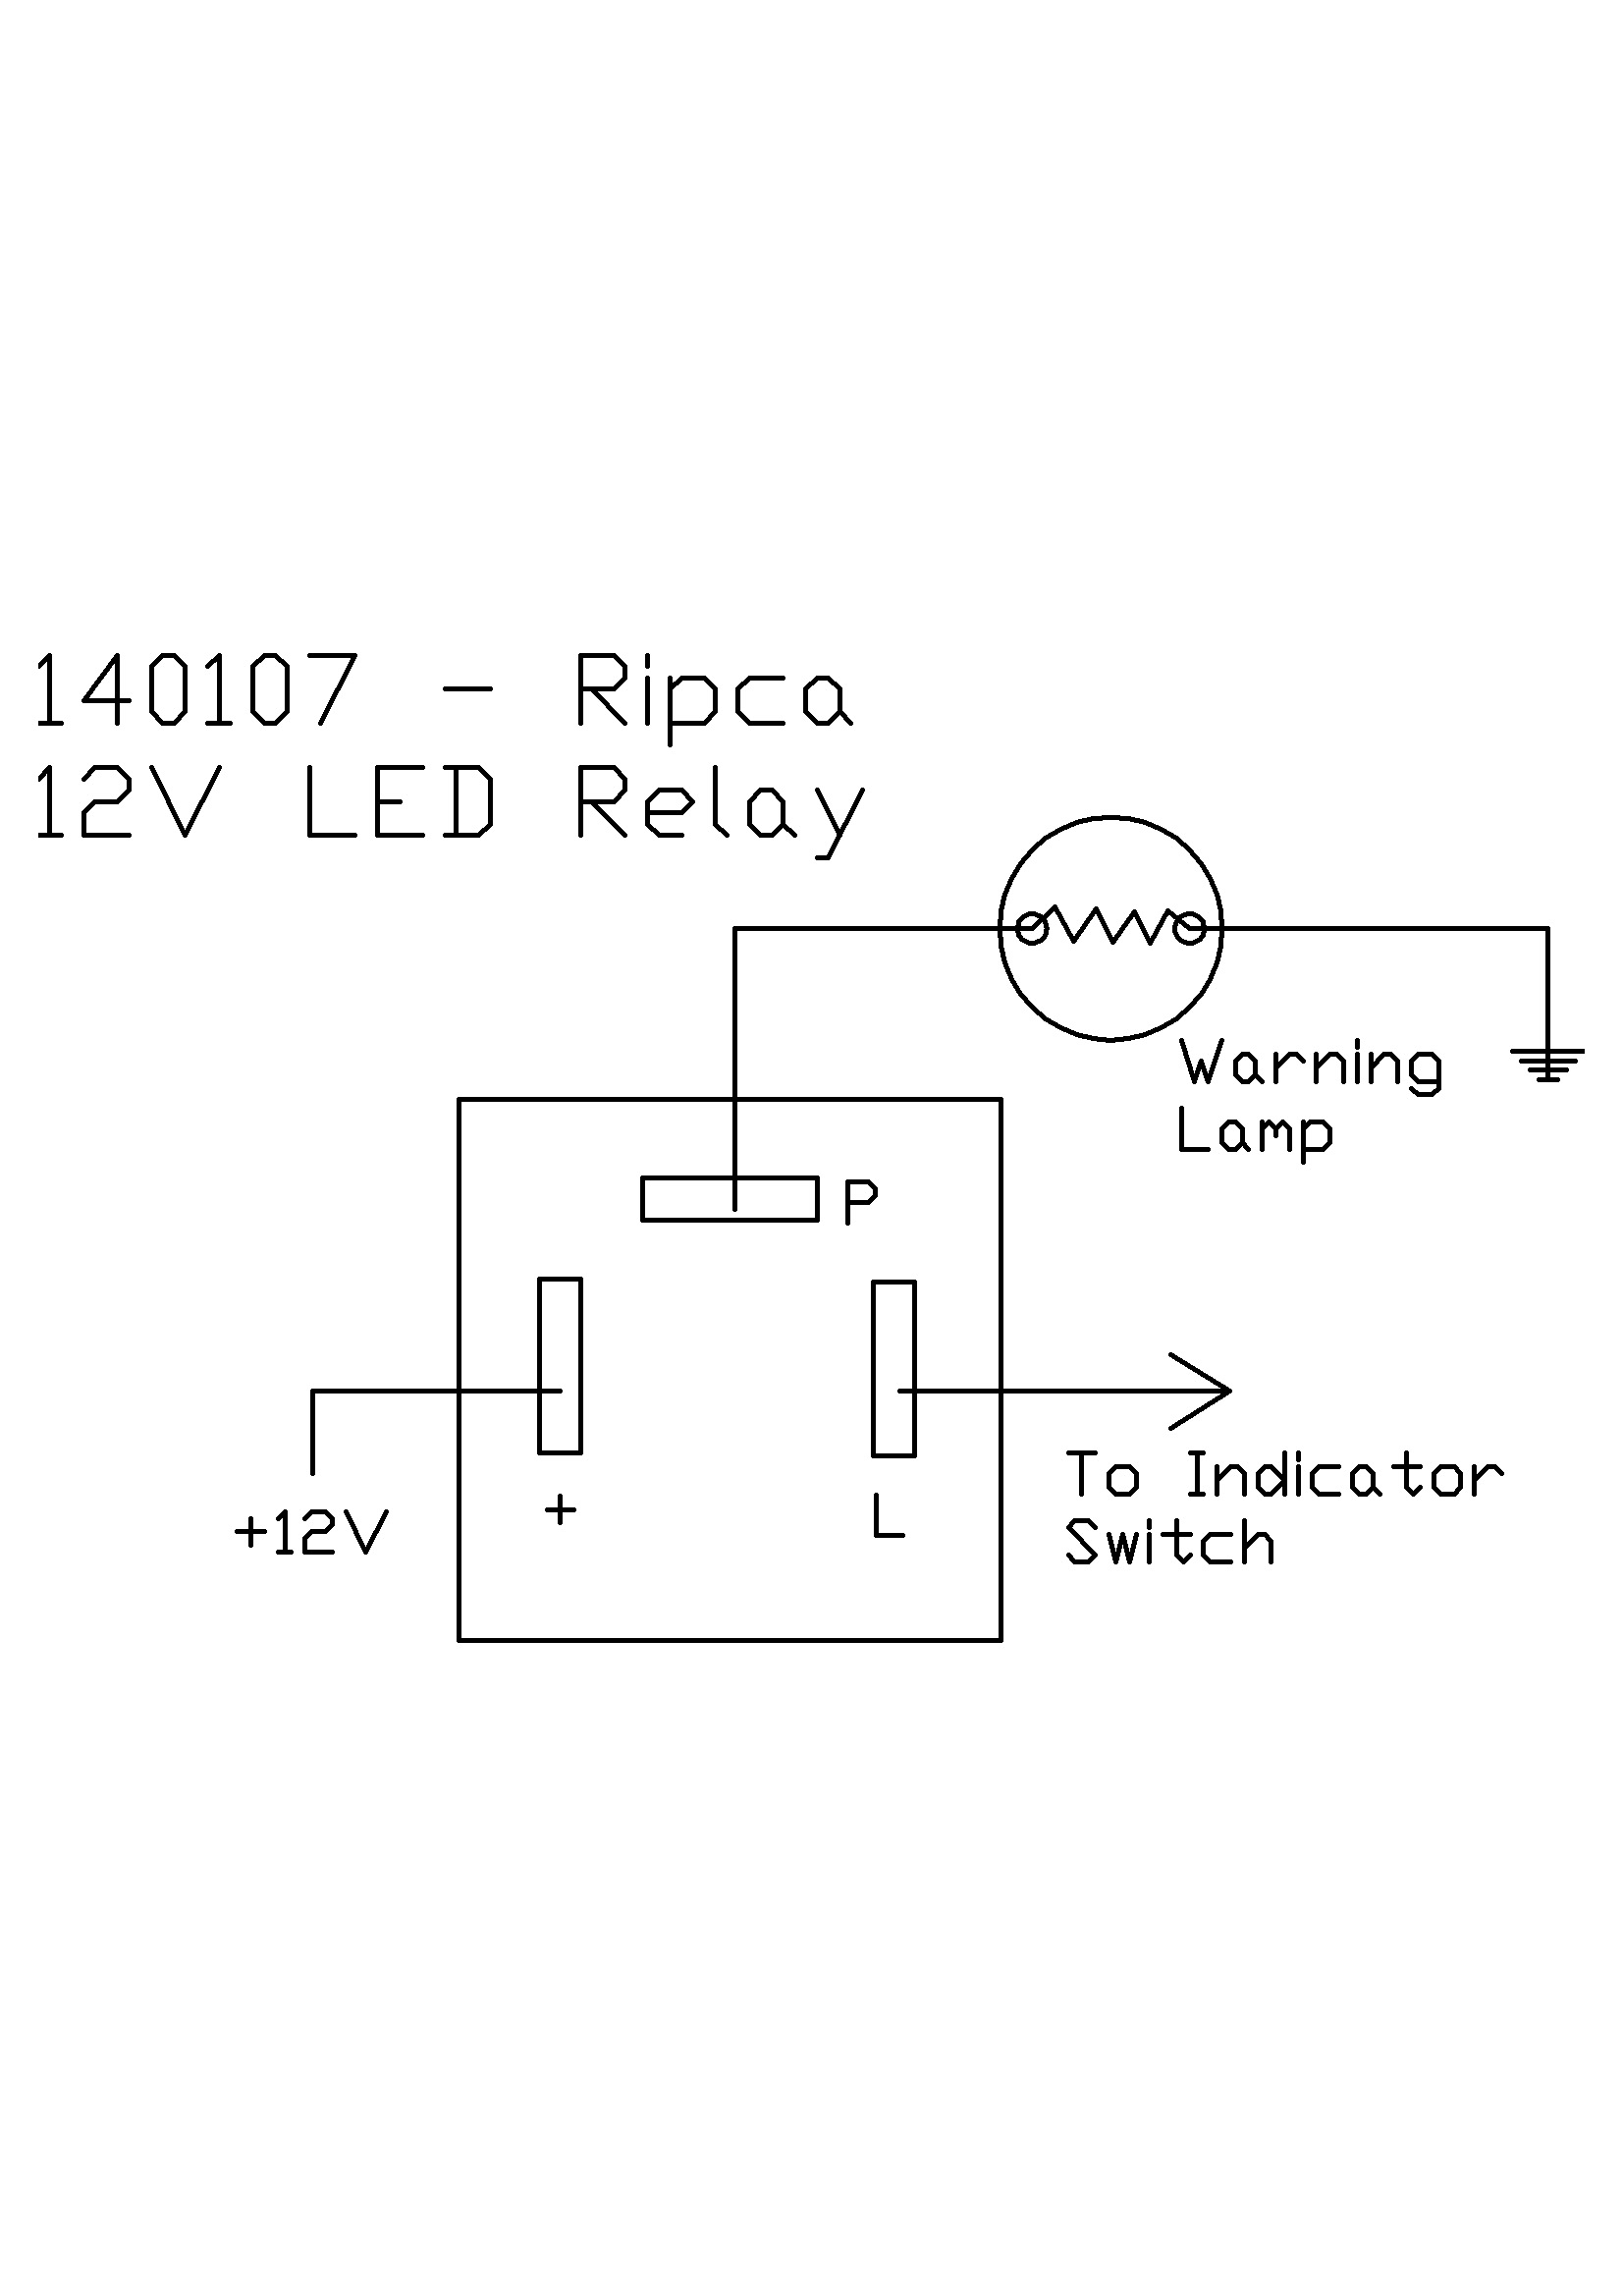 Led Flasher Wiring Diagram - Wiring Diagram Review on